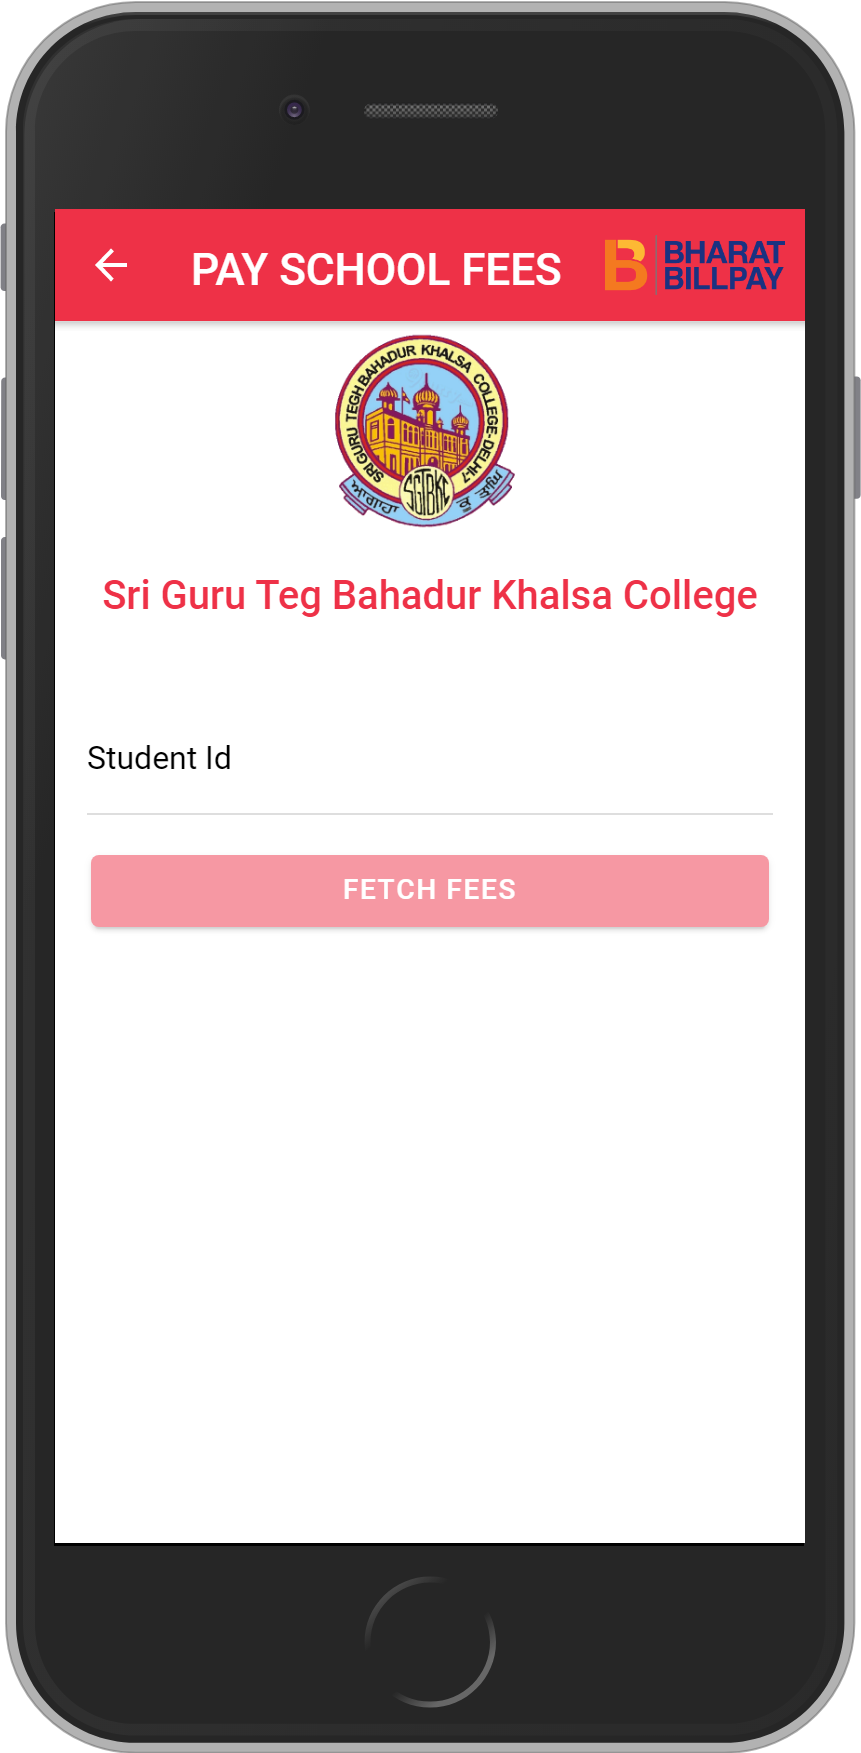 Get UNLIMITED <b>0.1%</b> CASHBACK on Sri Guru Teg Bahadur Khalsa College Fees Payment.